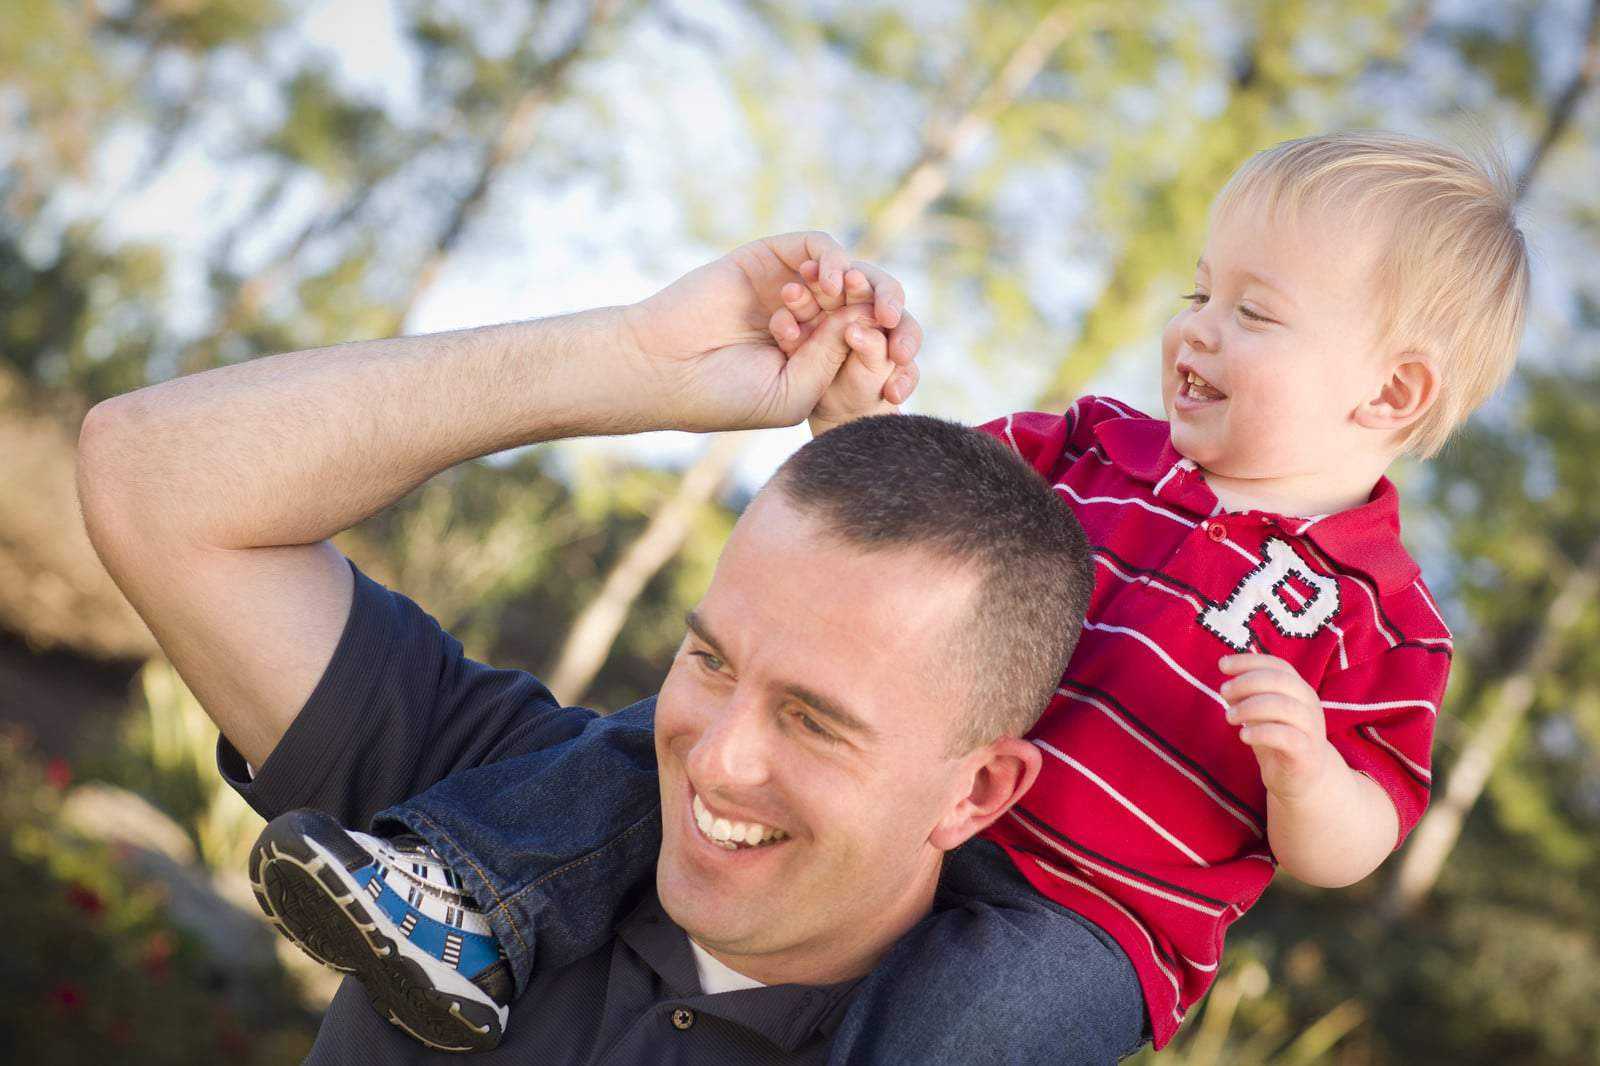 Rich Vaughn Blog: Fertility Services for Wounded Vets Mired in Reproductive Politics